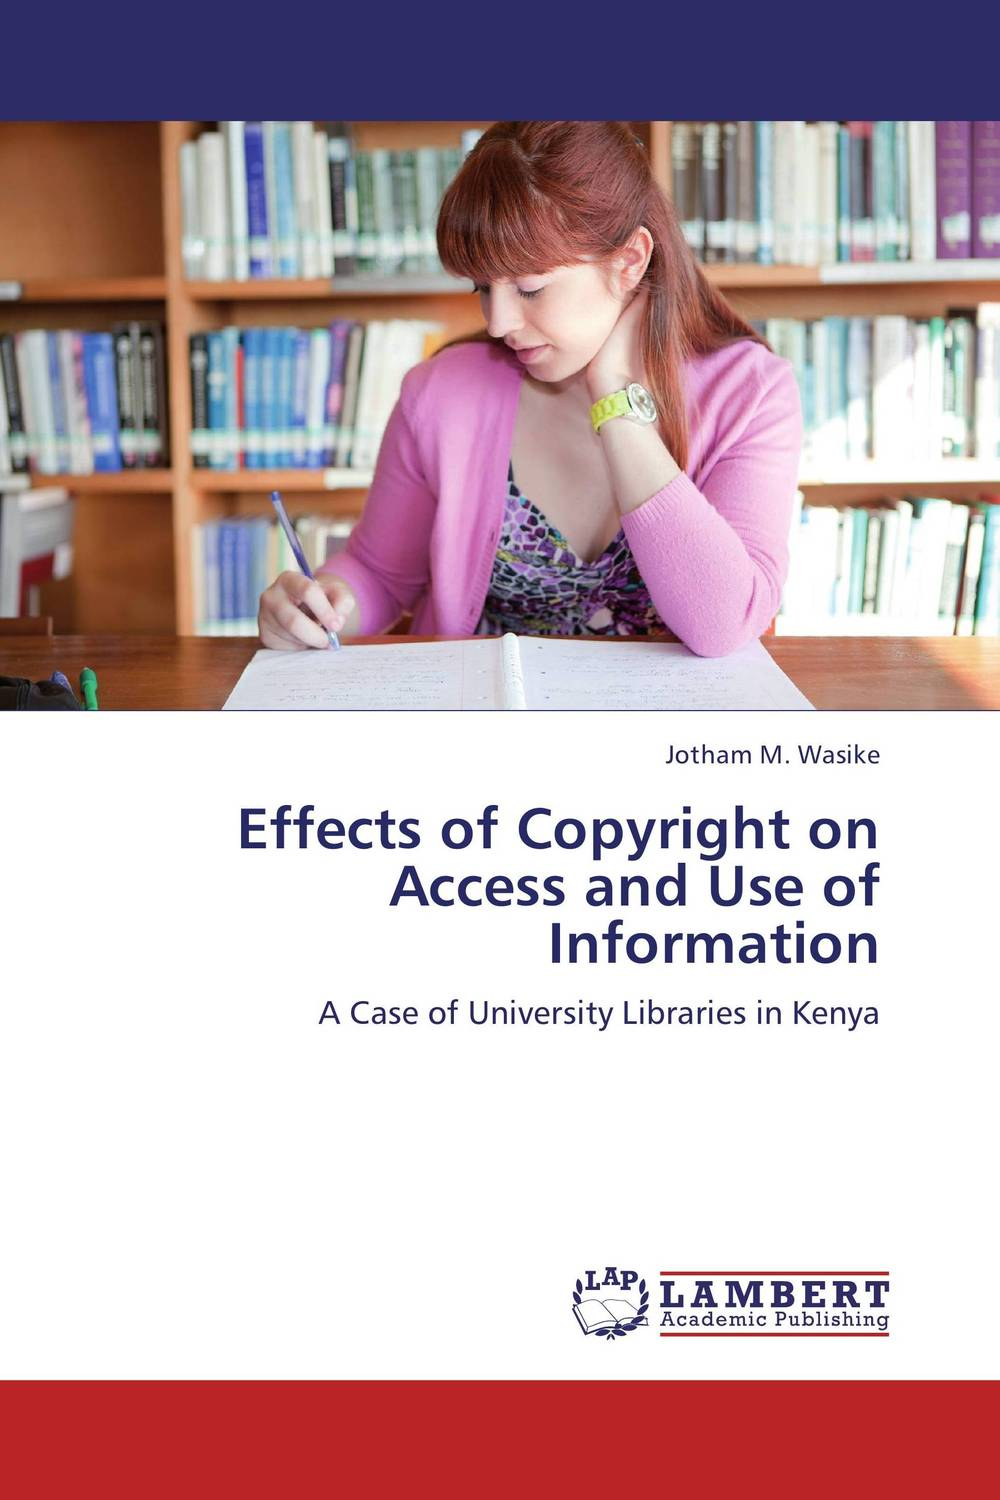 Effects of Copyright on Access and Use of Information primavera de filippi copyright law in the digital environment